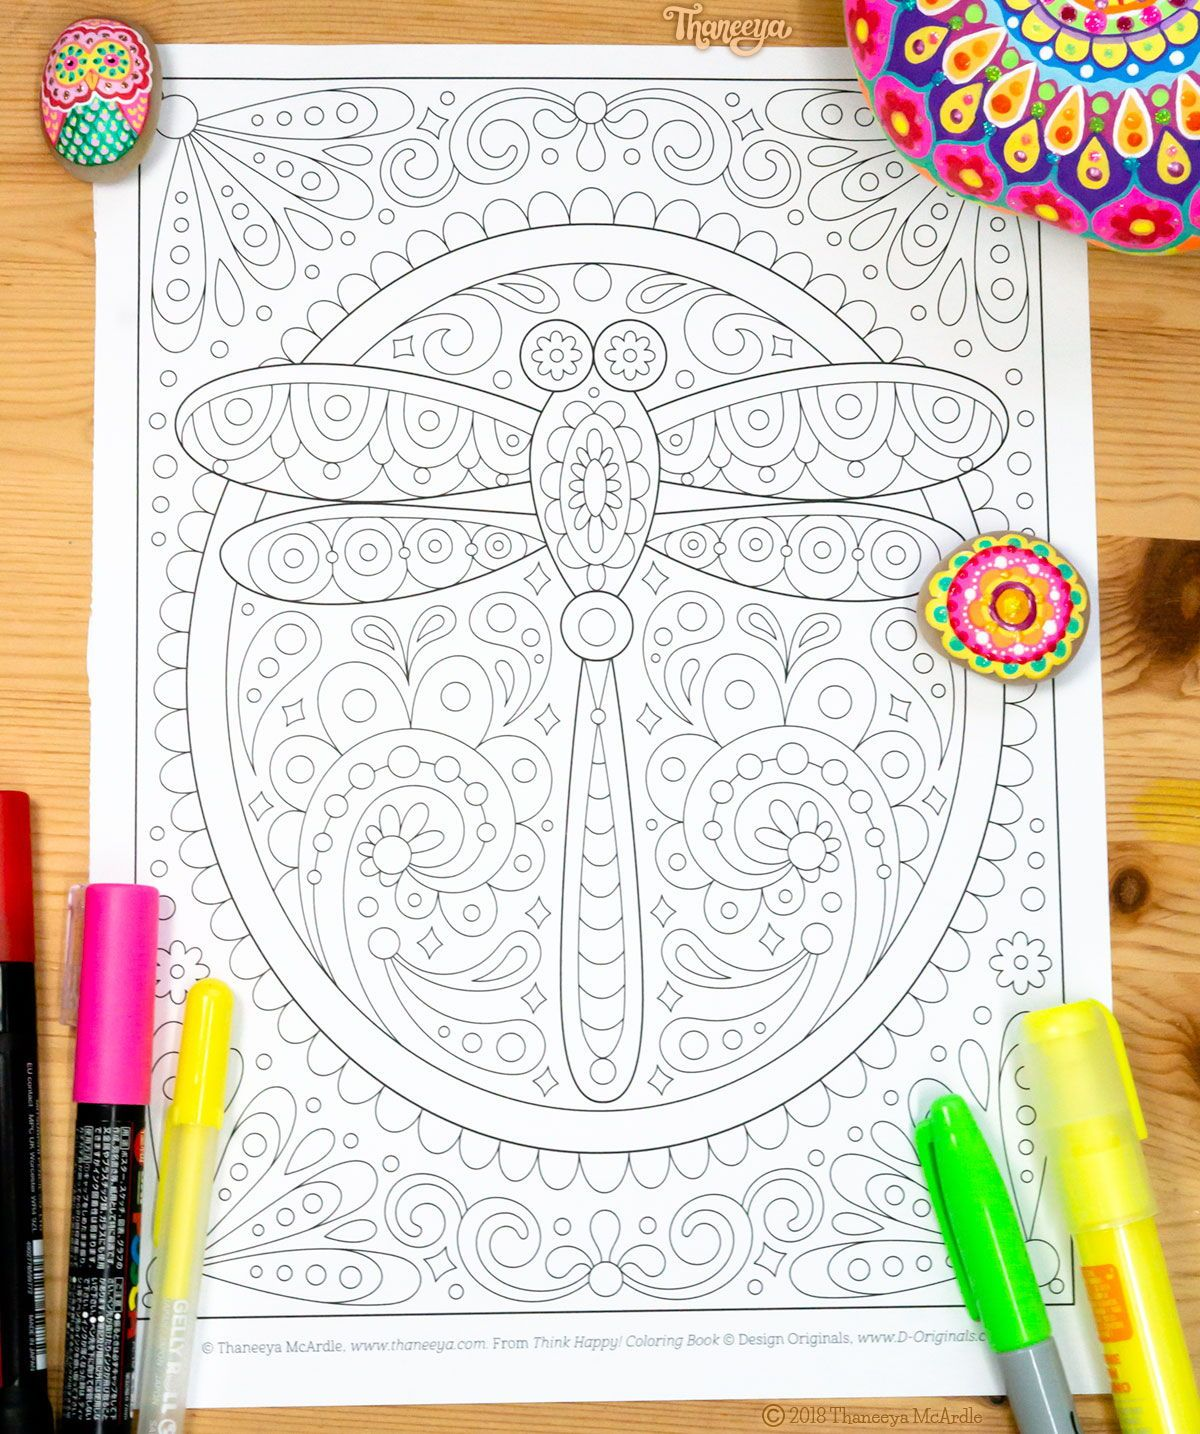 Dragonfly Coloring Page From Thaneeya Mcardle S Think Happy Coloring Book Coloring Books Coloring Pages Free Coloring Pages